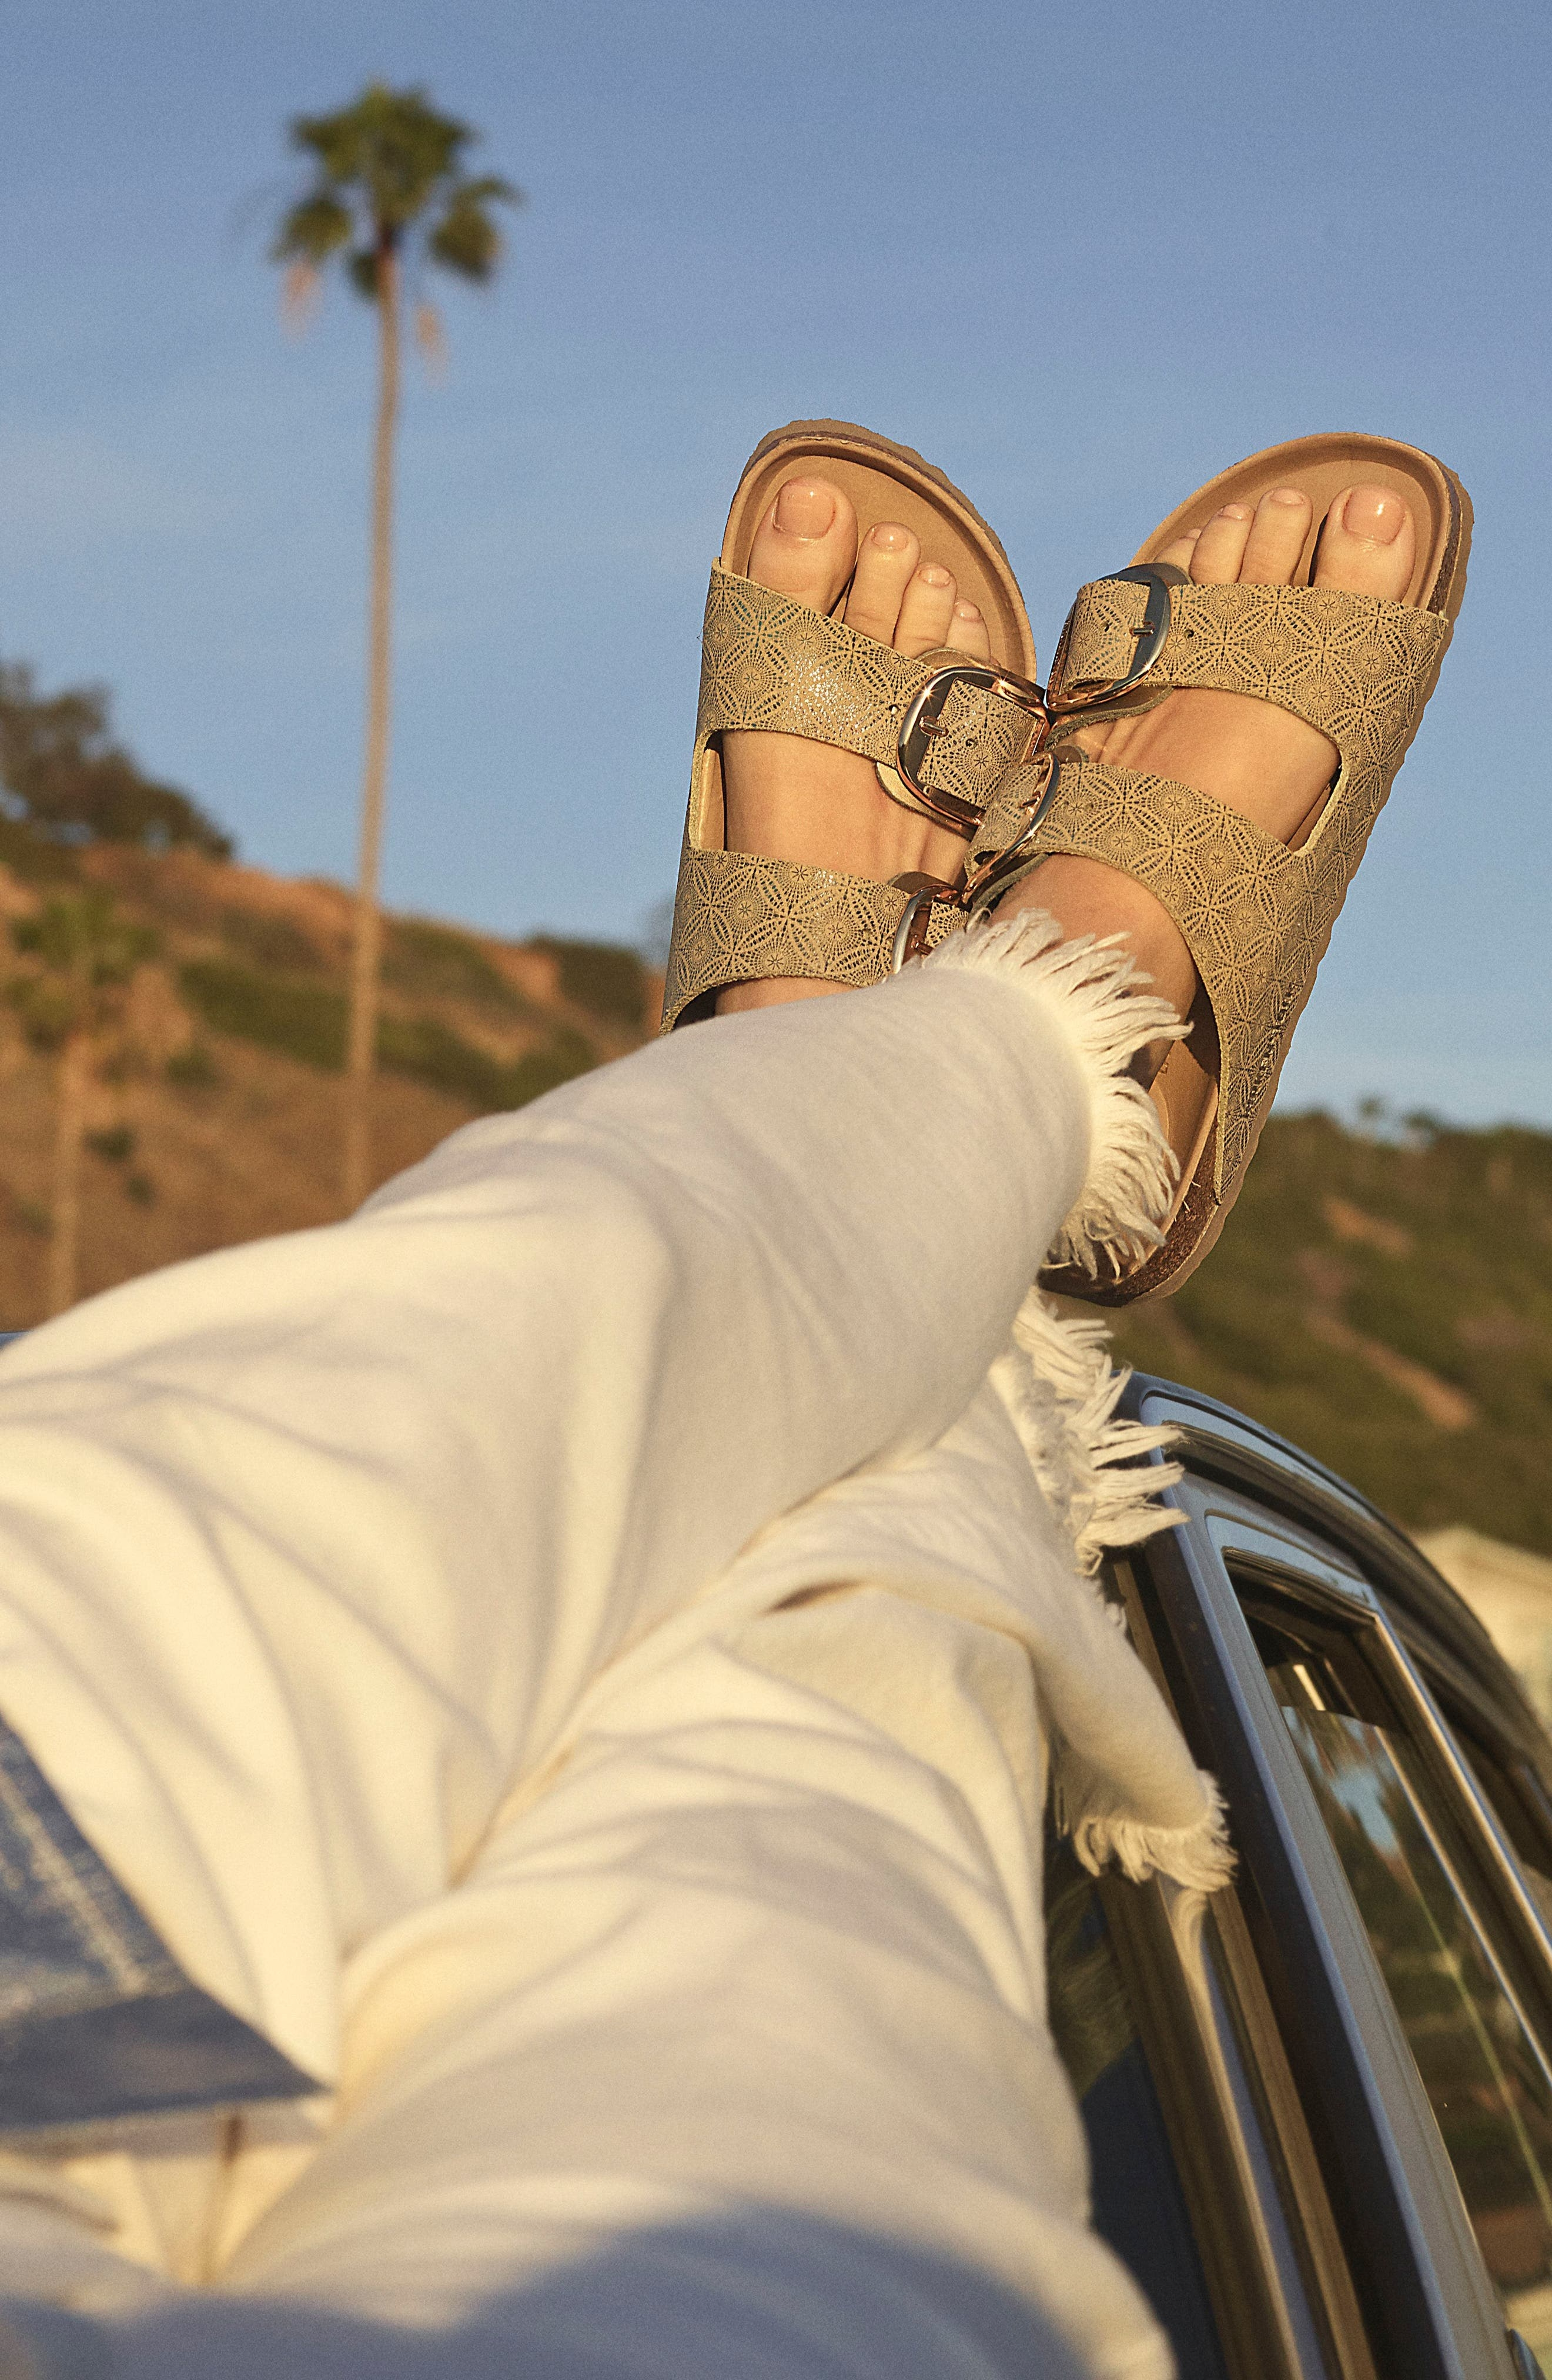 model's feet wearing two-strap flat sandal with a big shiny buckle on each strap